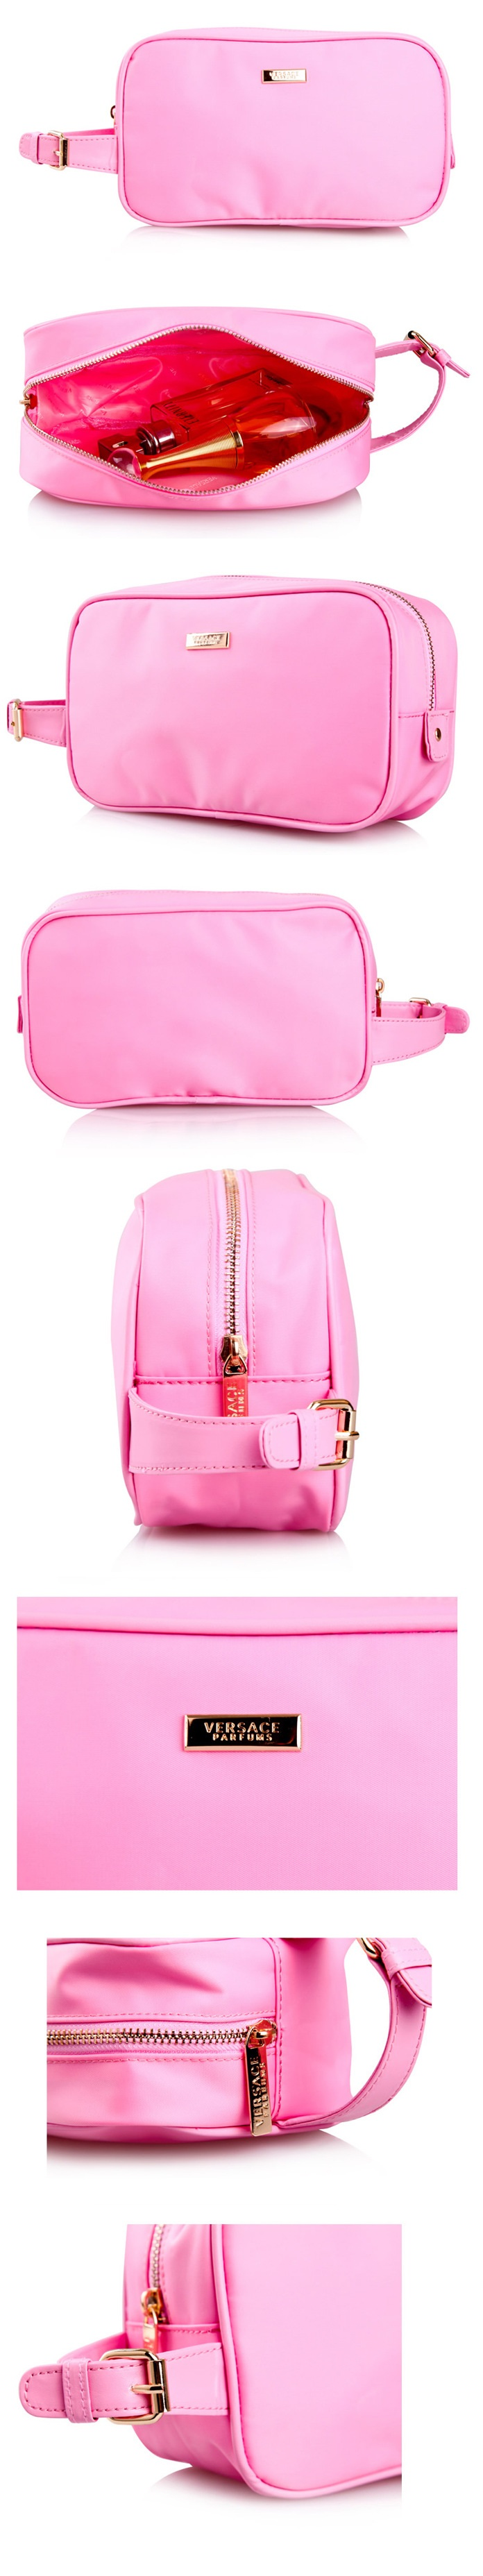 SALES Classic Pink Cosmetic Bag Hand Carry Clutch